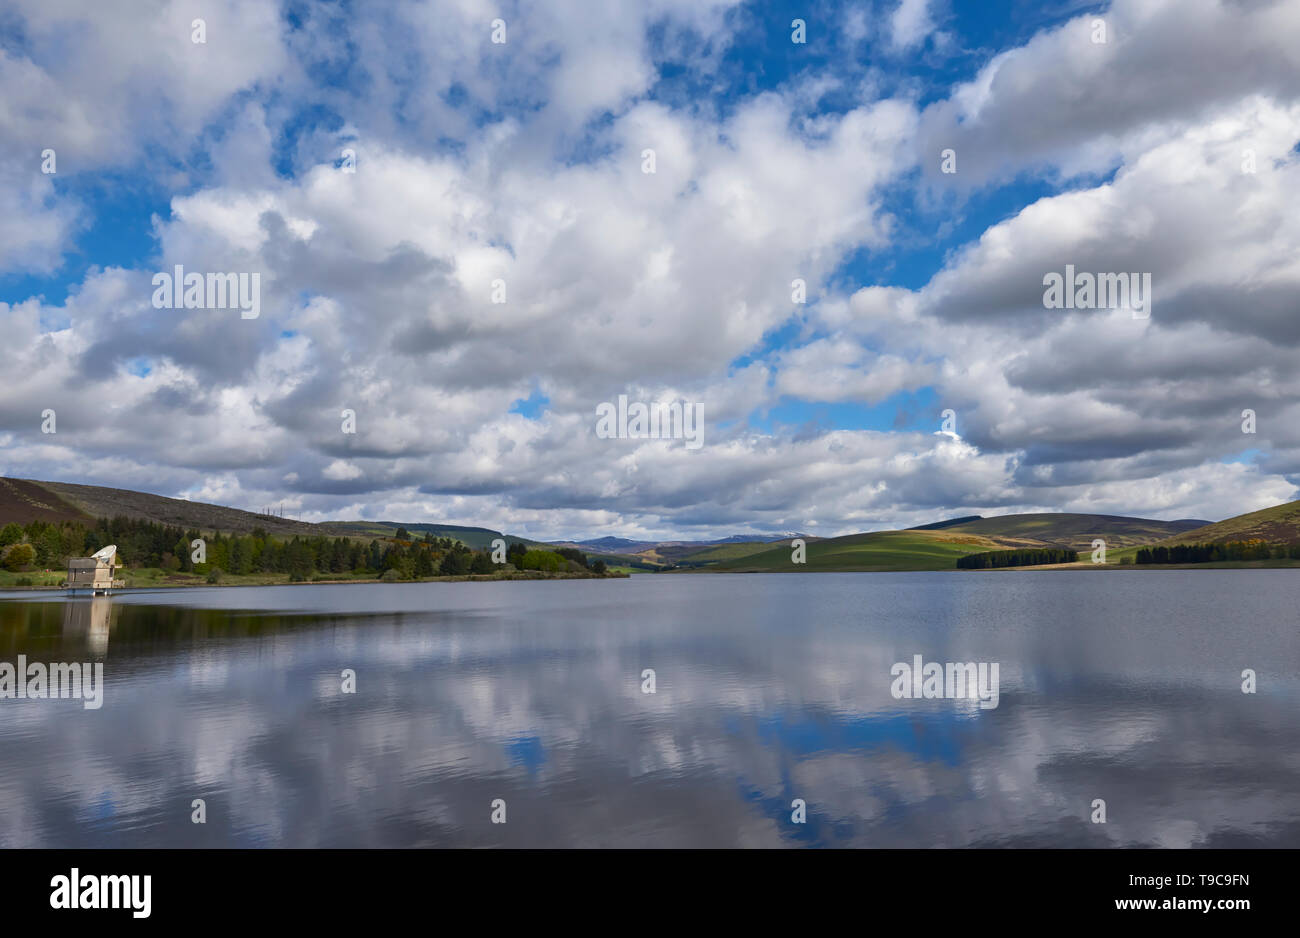 Backwater Reservoir and Pumping House set in the Angus Glens in Glen Isla near to Kirriemuir on a fine May Morning in 2019. Scotland. - Stock Image